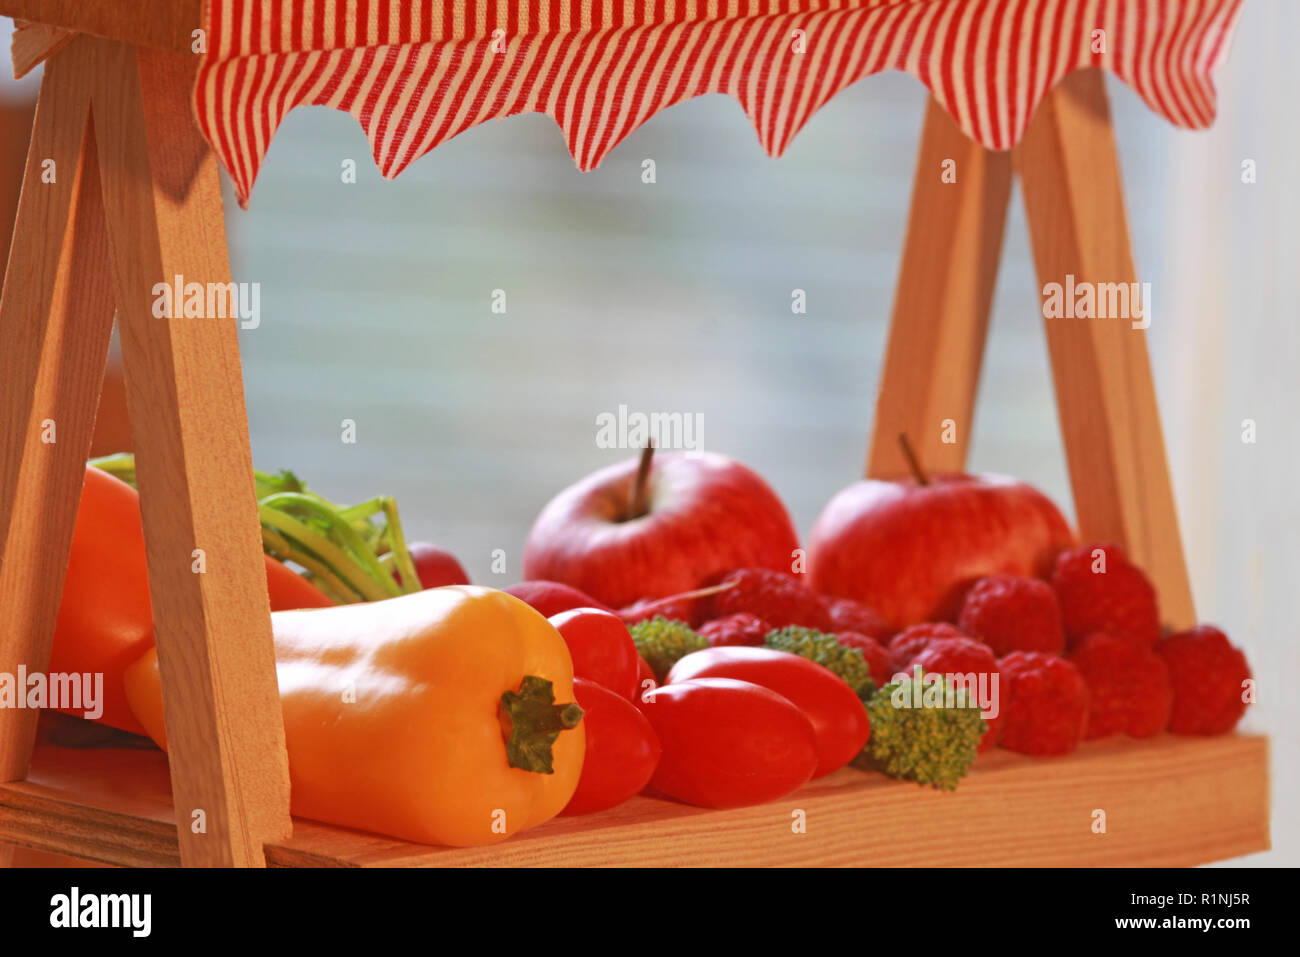 minature market stall with a variety of fruits and vegetables, side view - Stock Image